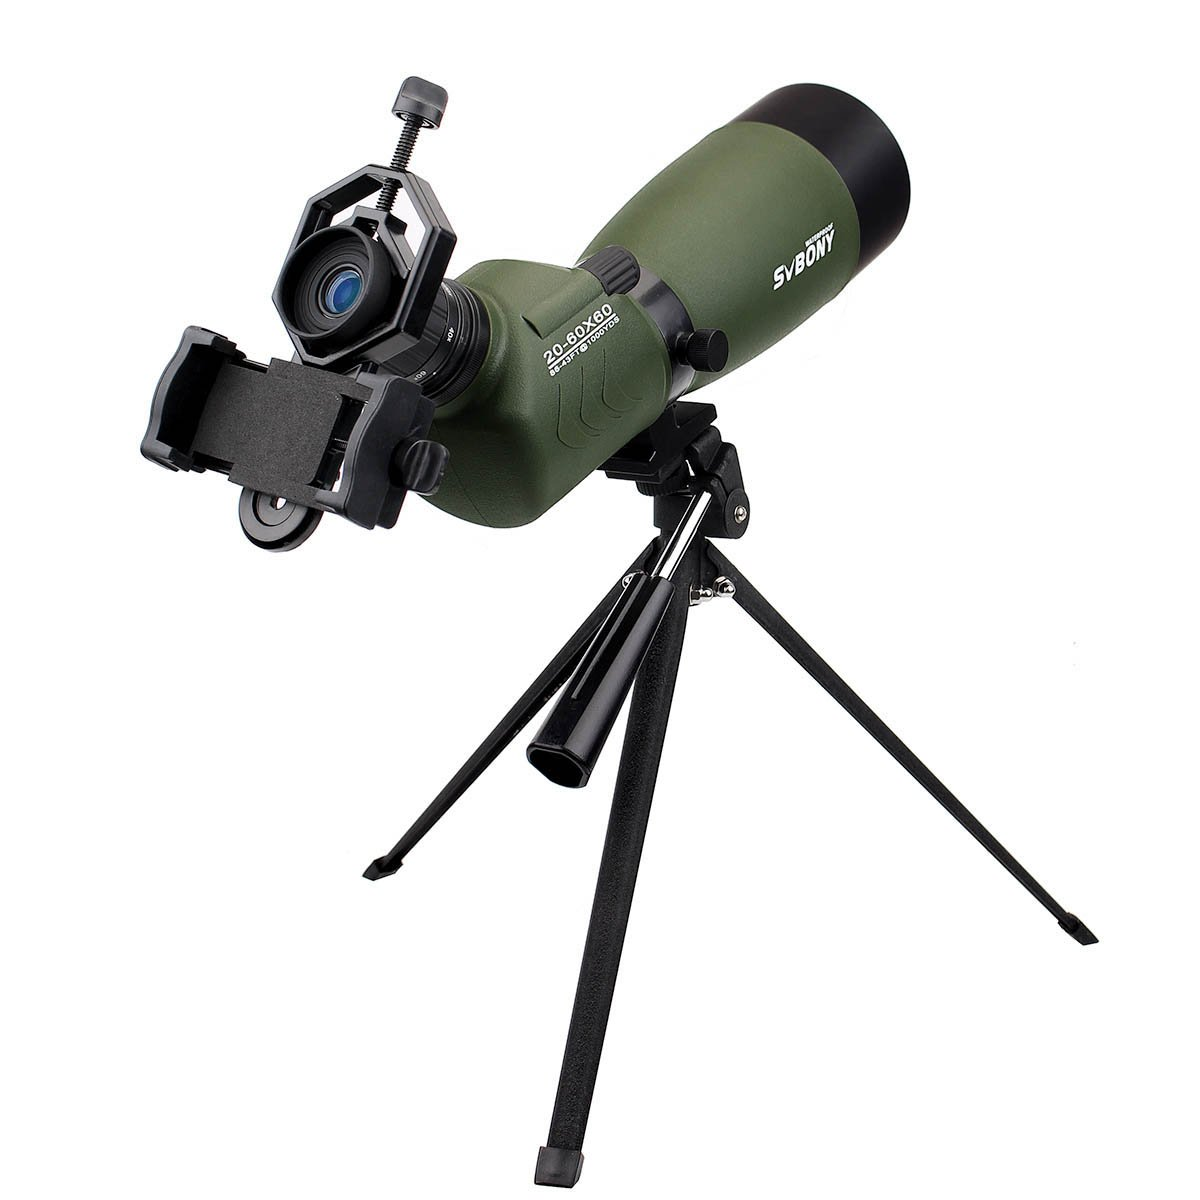 SVBONY 20-60x60/25-75x70mm Shooting Spotting Scope Bak4 Prism Spotting Scope Telescope IP65 Waterproof FMC Optical Lens with Tripod and Phone Adapter by SVBONY